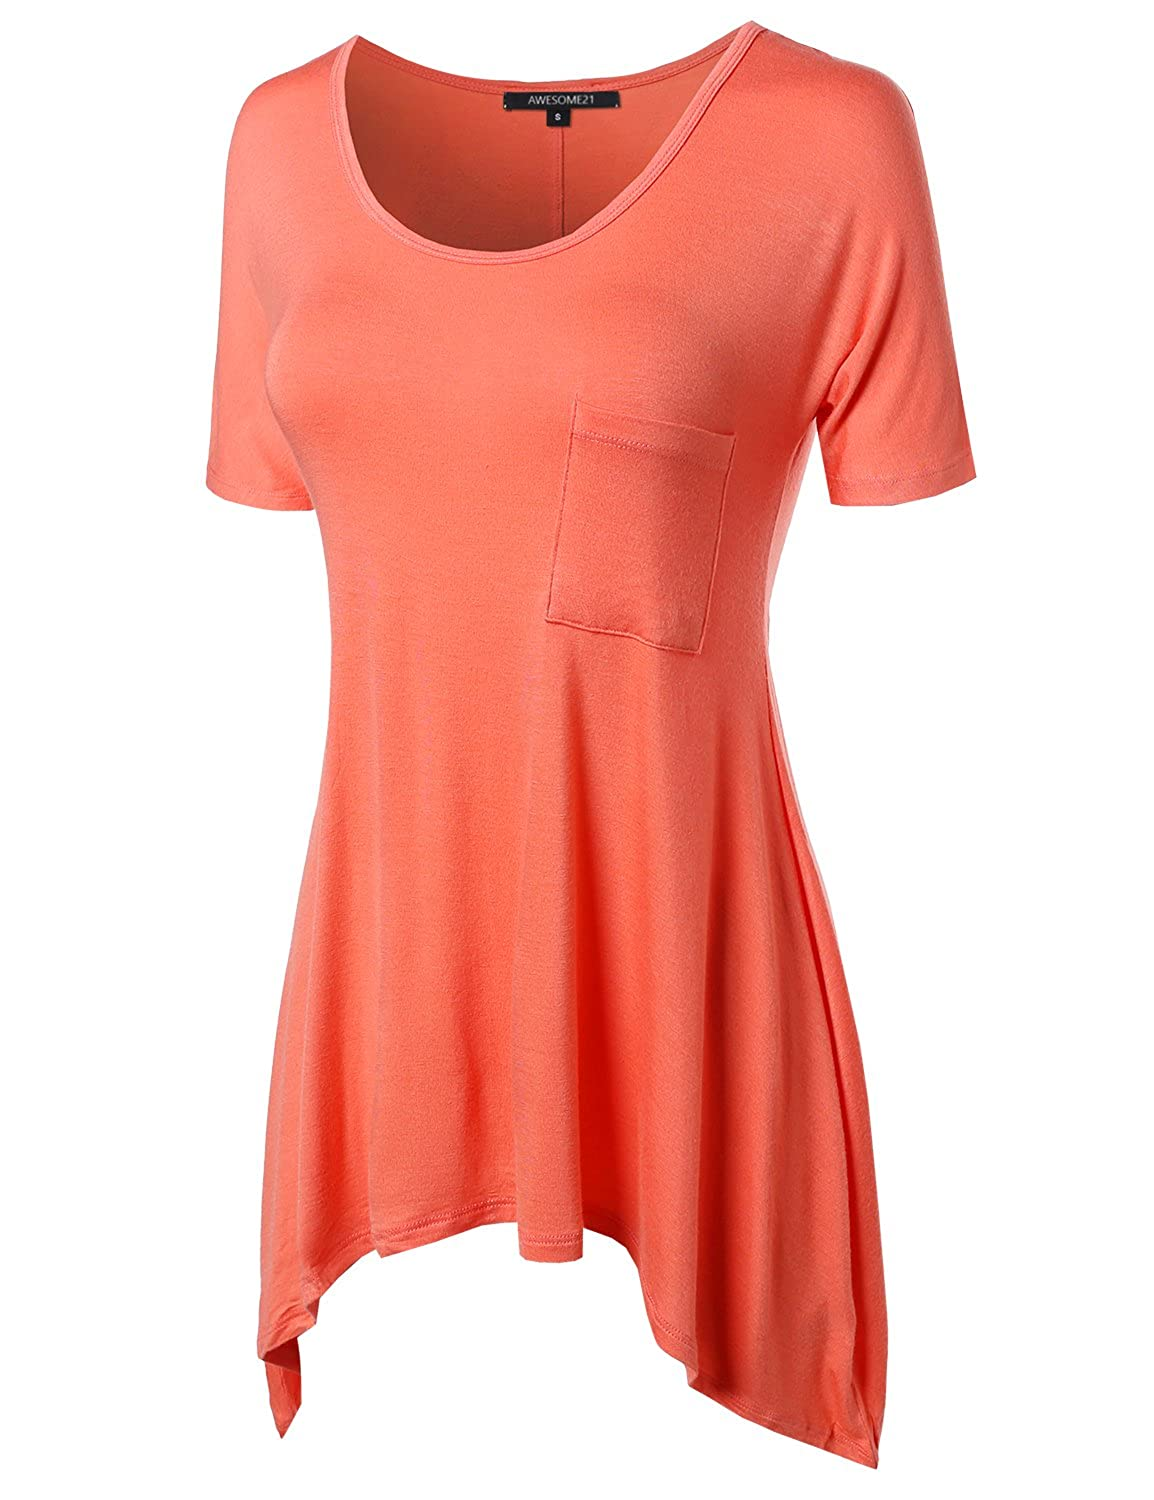 5fcdec18e32ab7 Awesome21 Women s Short Sleeve Solid Various Hem Top With Pocket at Amazon  Women s Clothing store